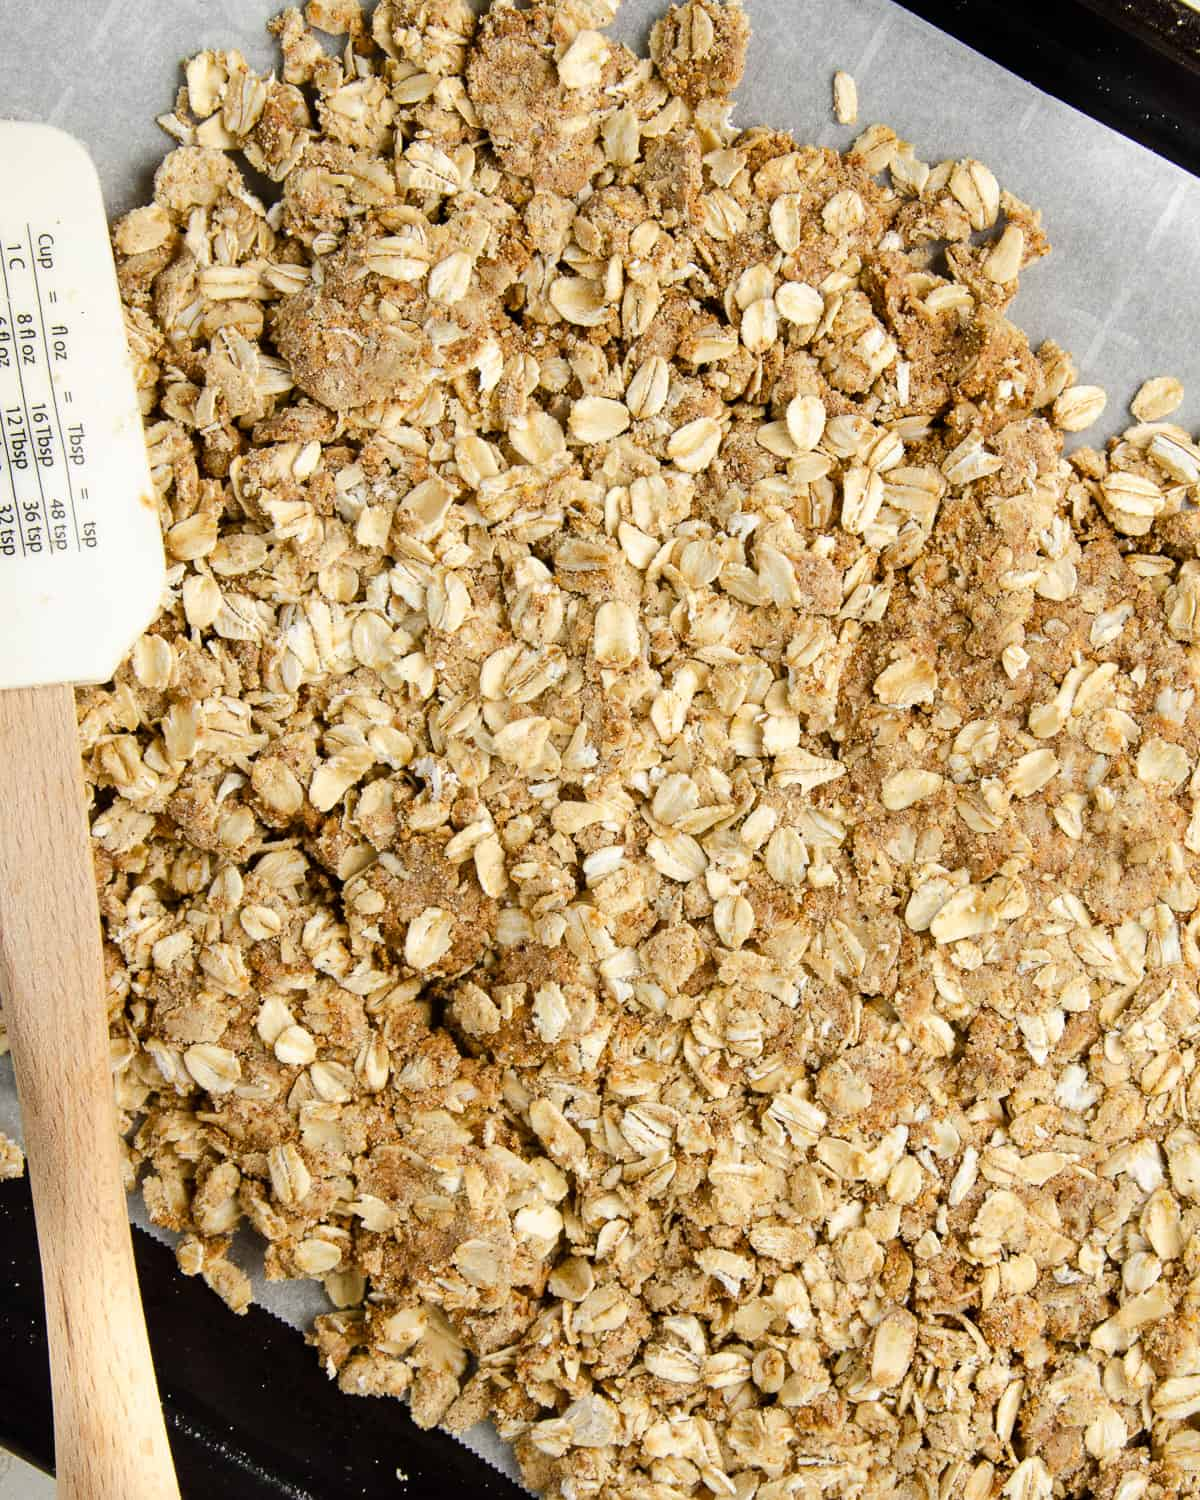 Flattening the protein granola onto parchment lined baking tray before baking.